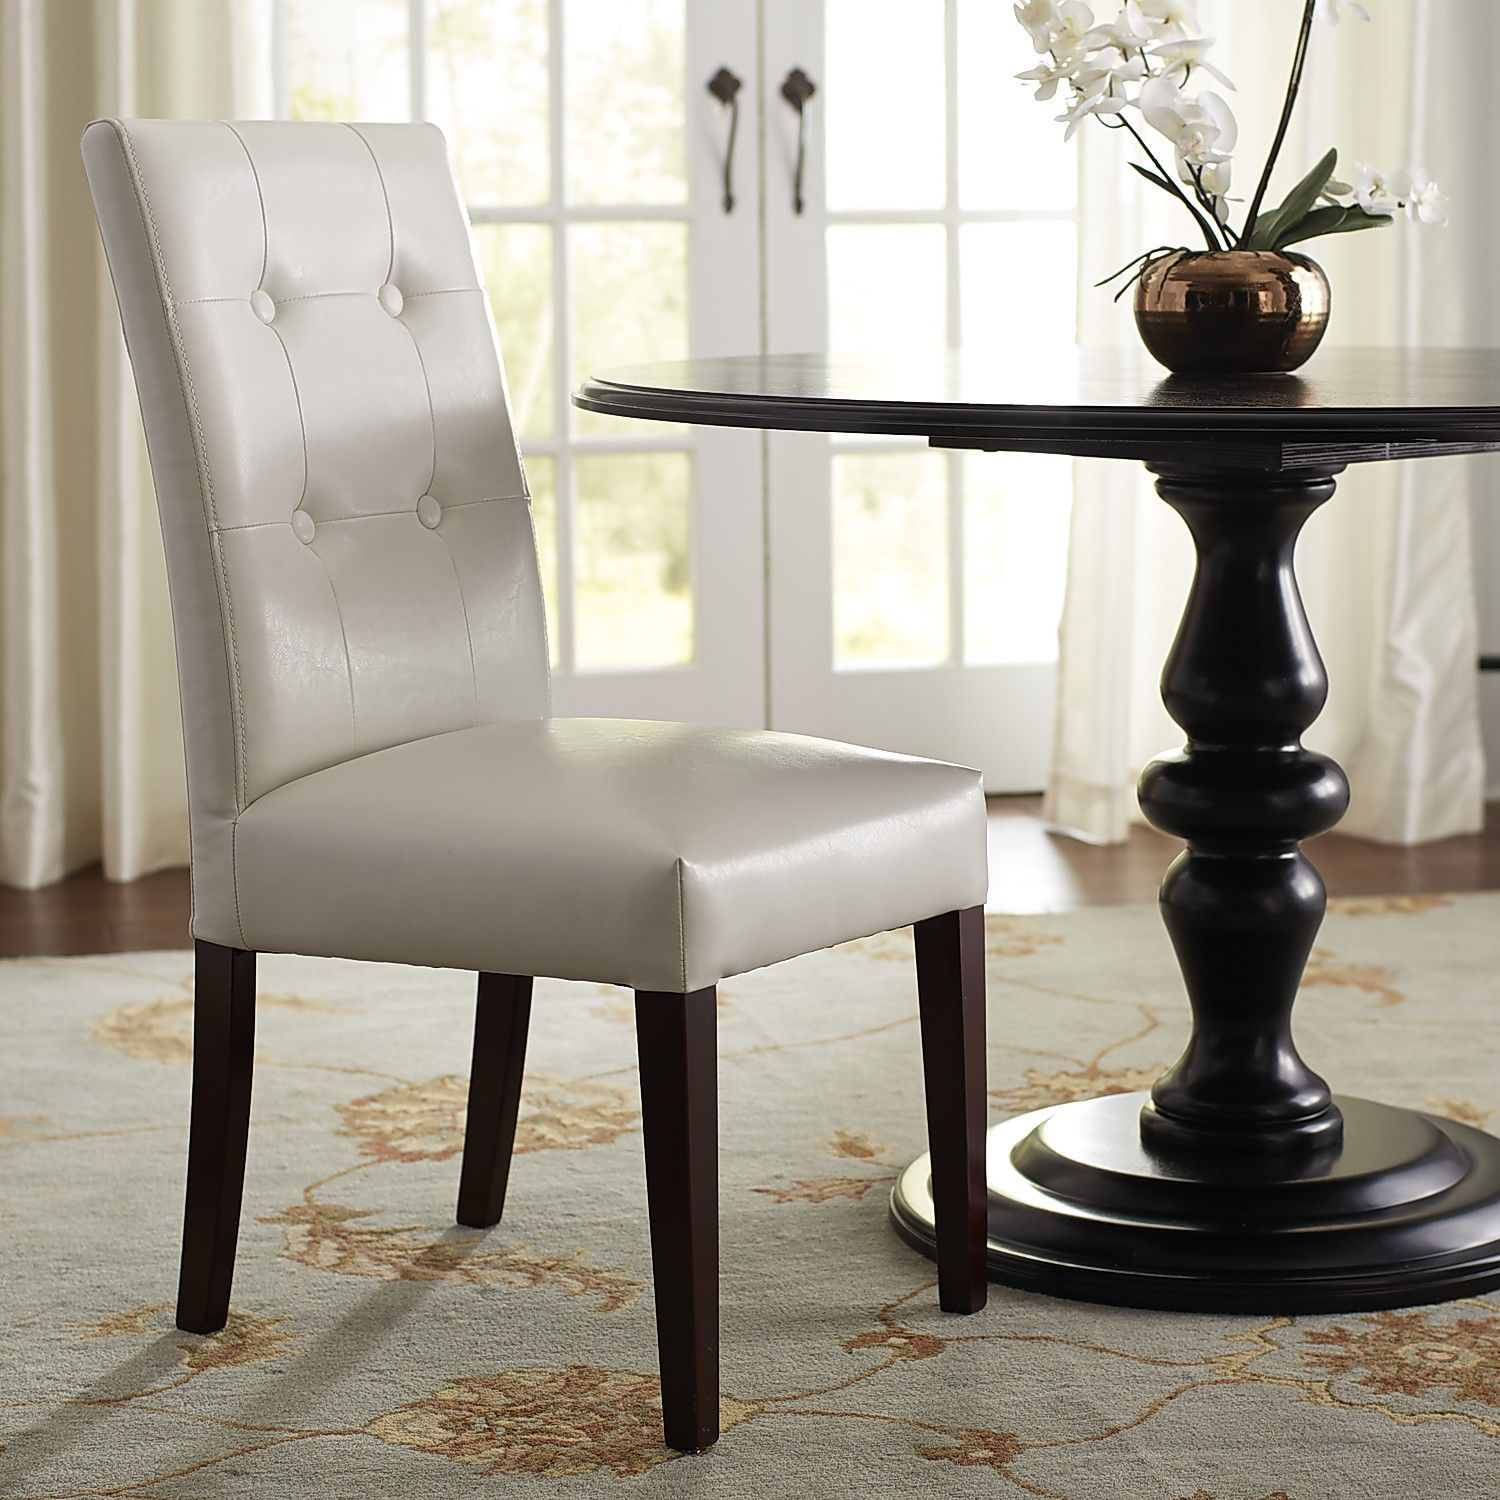 Mason Dining Chair Pure White Pier 1 Imports Outdoor